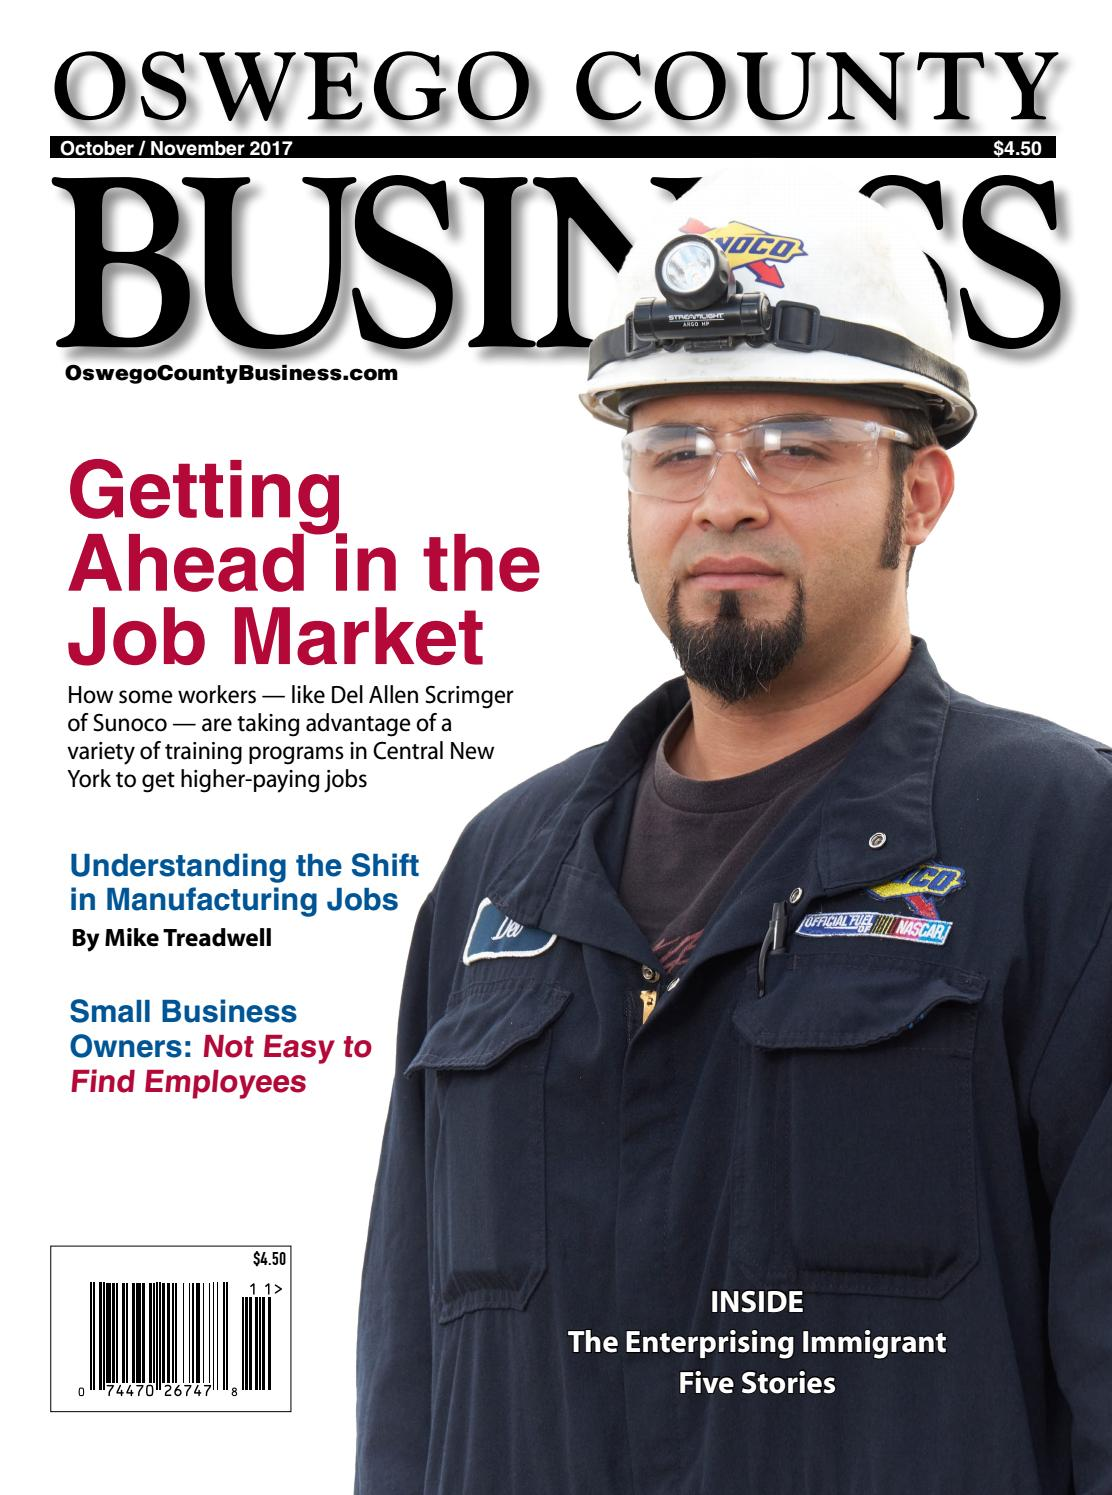 Ocbm Issue 152 Oct Nov 17 By Wagner Dotto Issuu Ameriprise Wiring Instructions